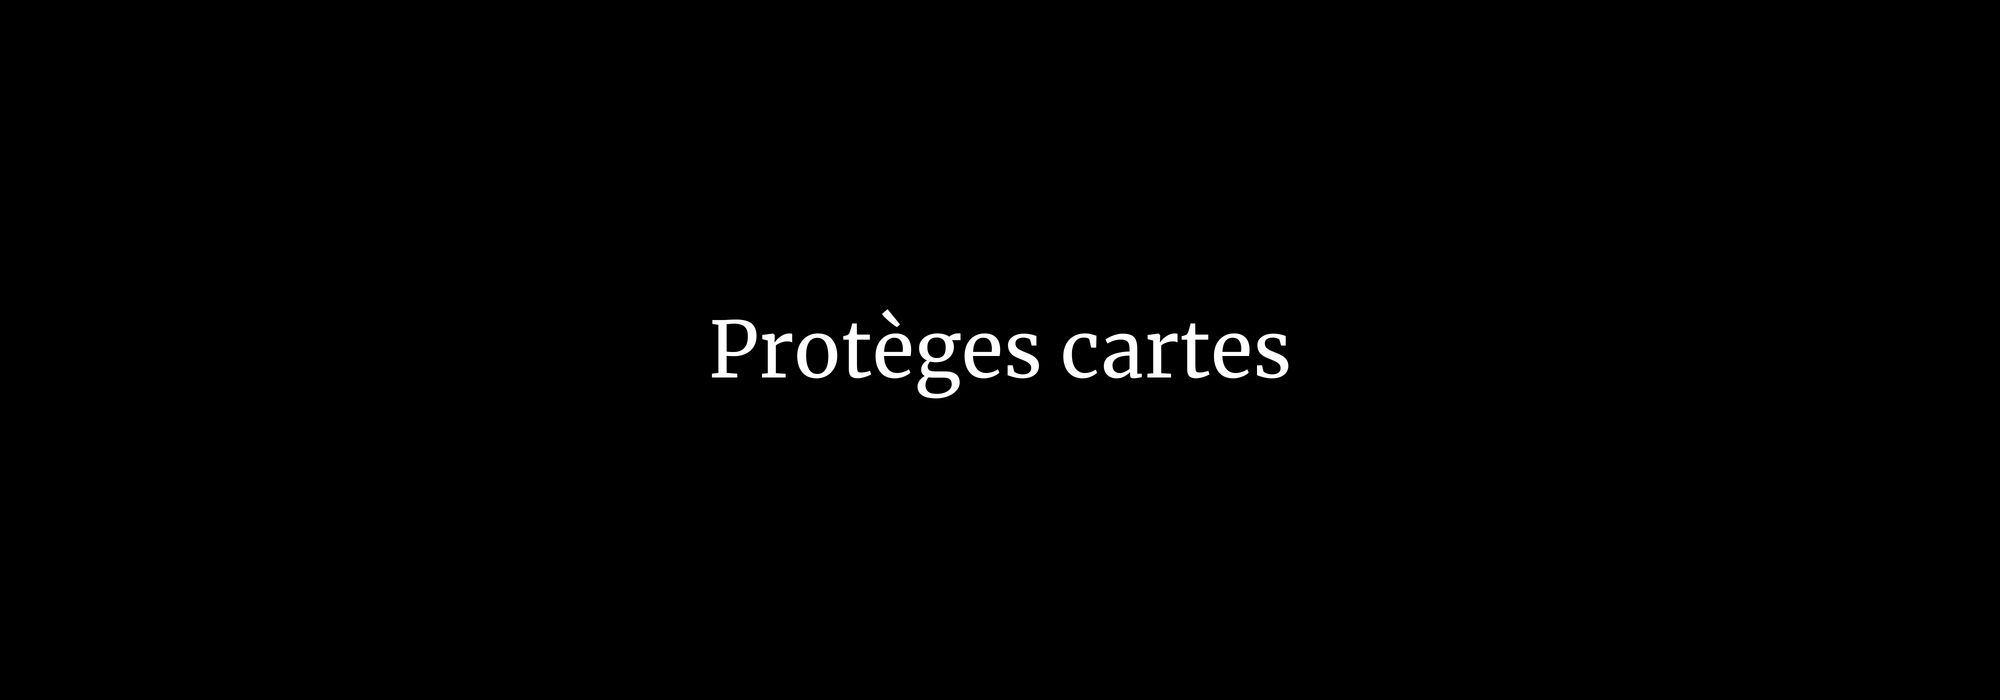 Protèges cartes